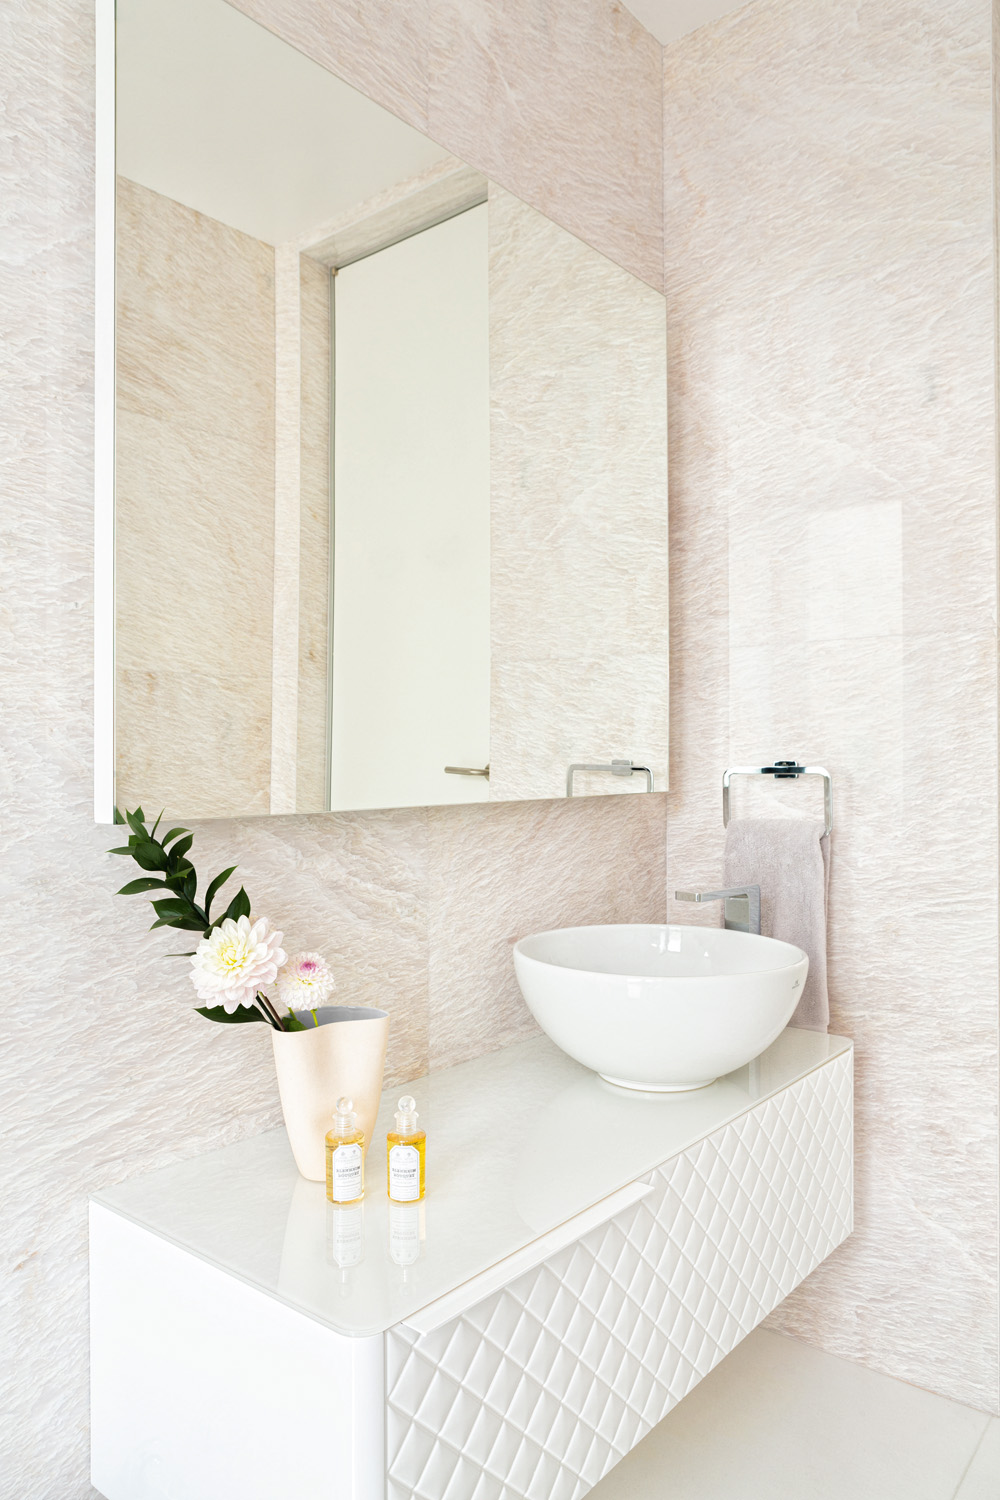 A textured vanity brings interest to the calming bathroom